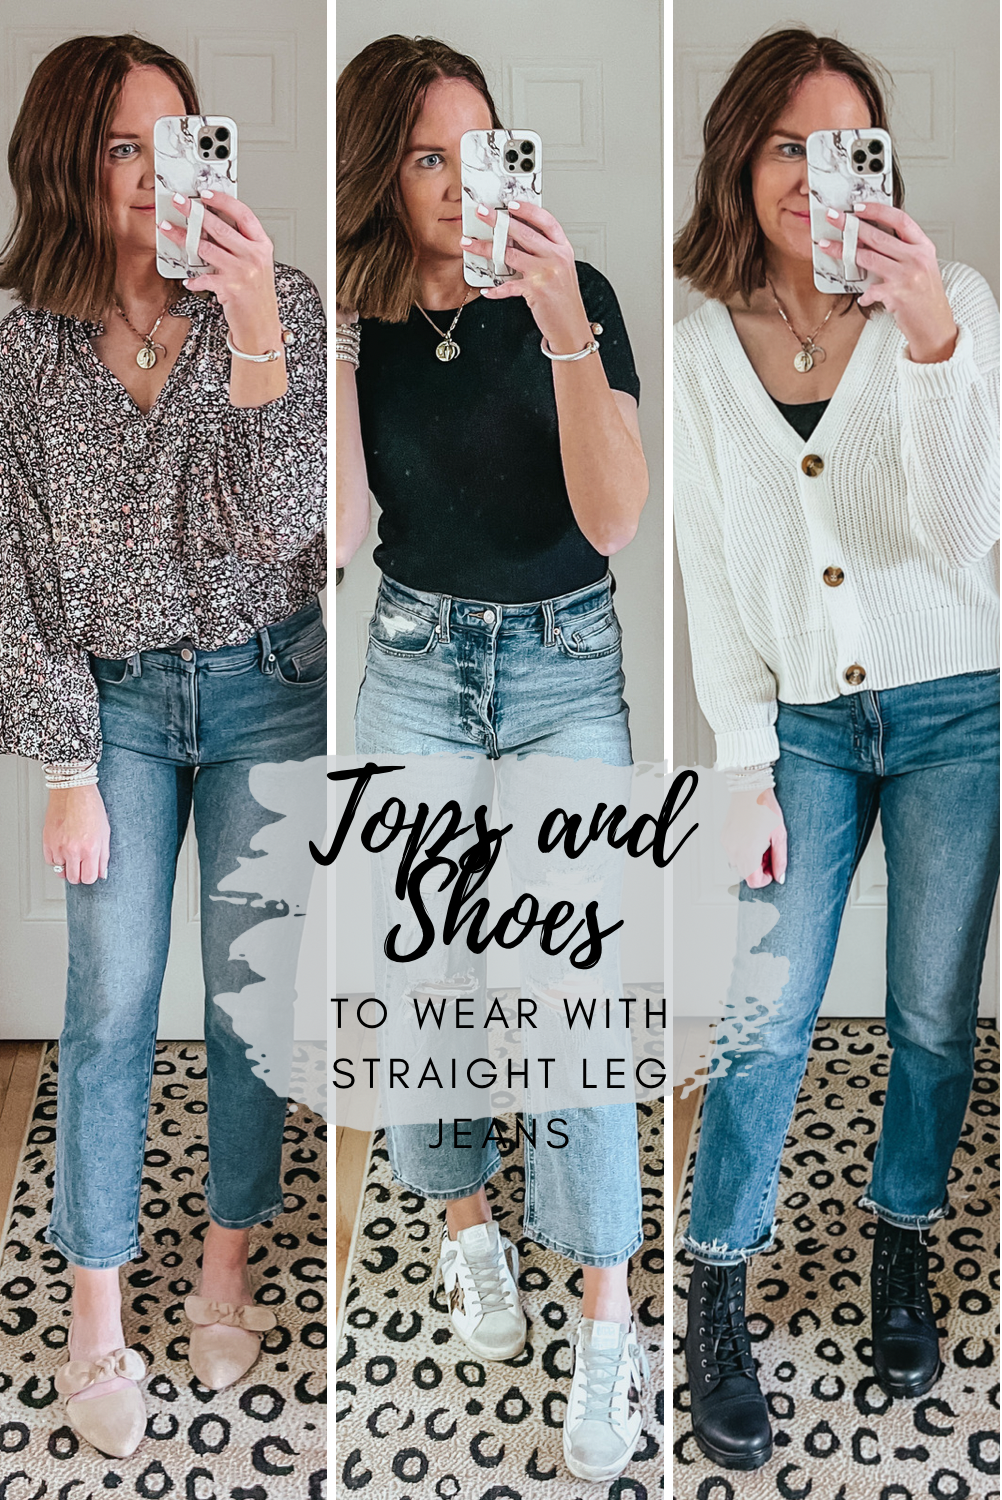 Tops and Shoes to Wear with Straight Leg Jeans